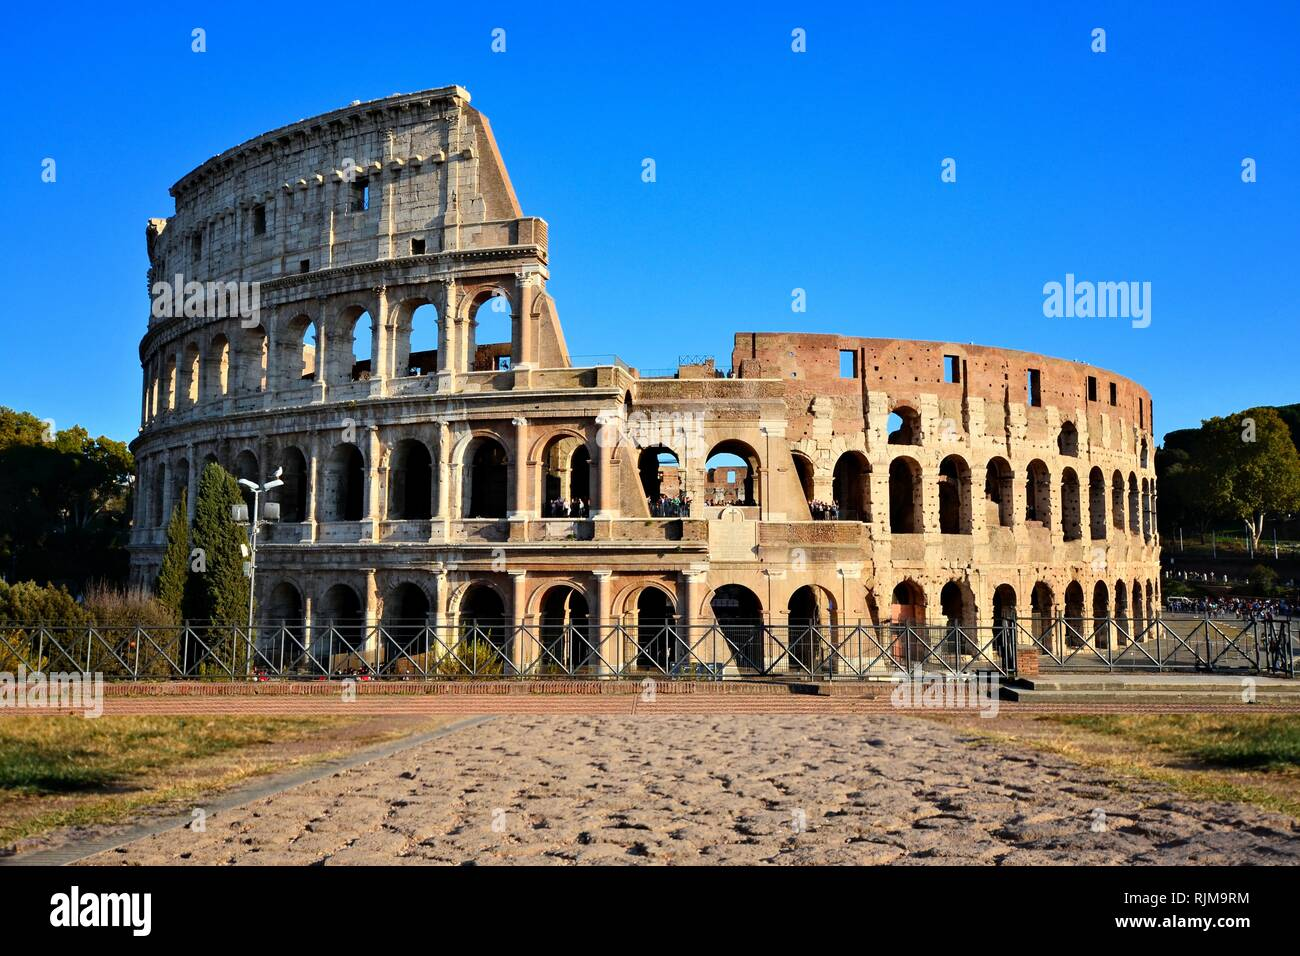 Rome, Italy, the Coliseum. View from Forum with ancient stone road. Stock Photo